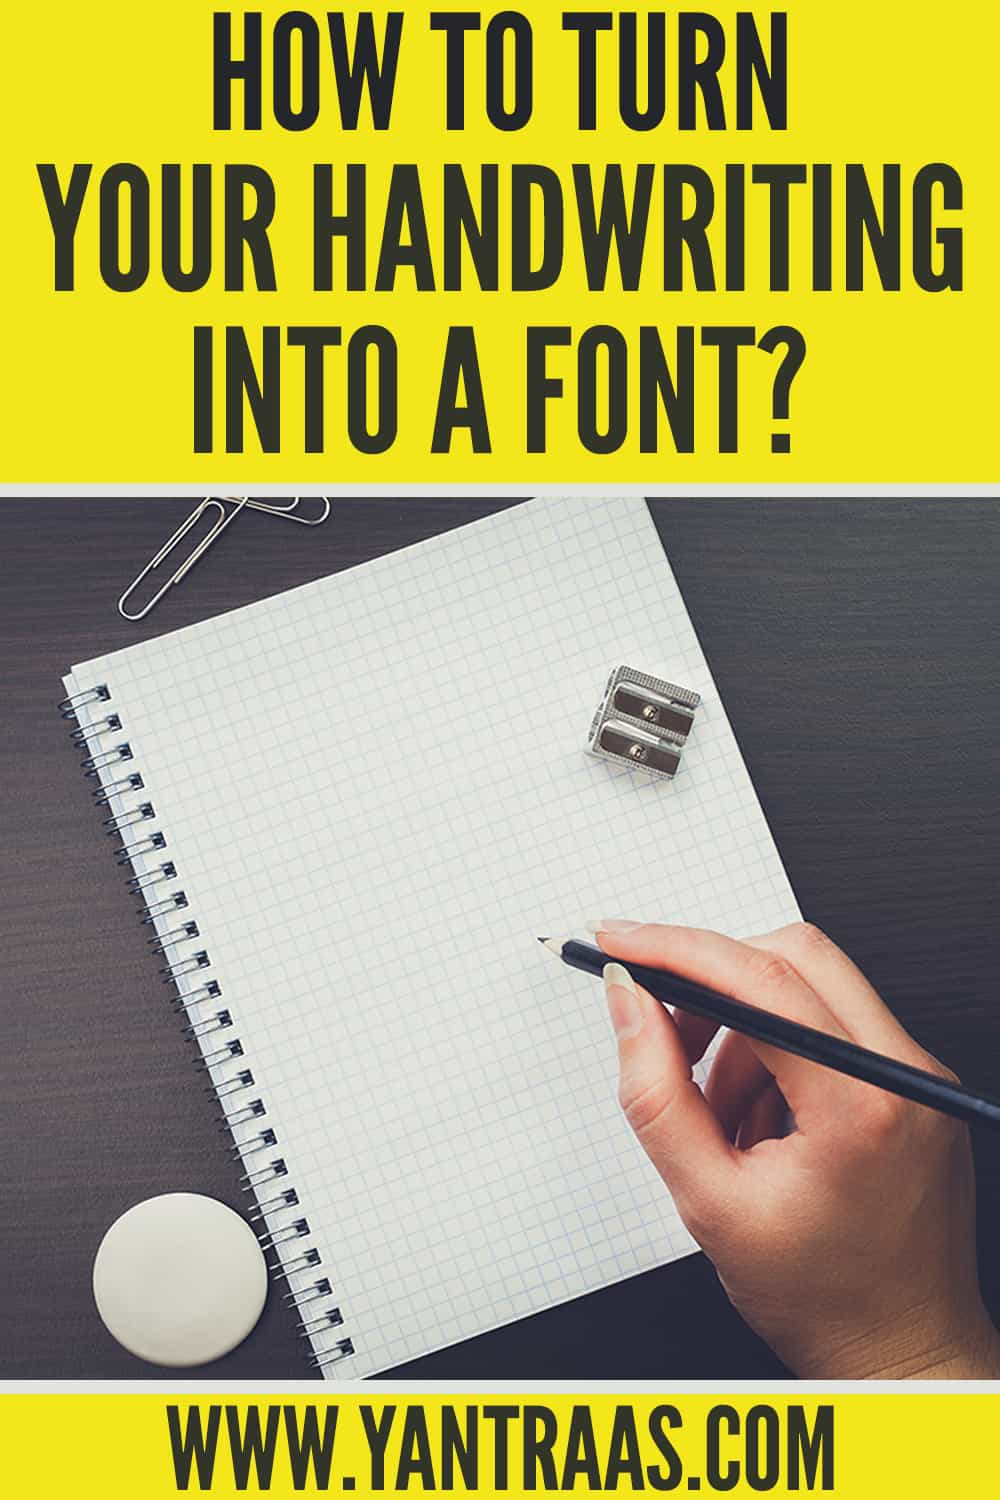 turn handwriting into font